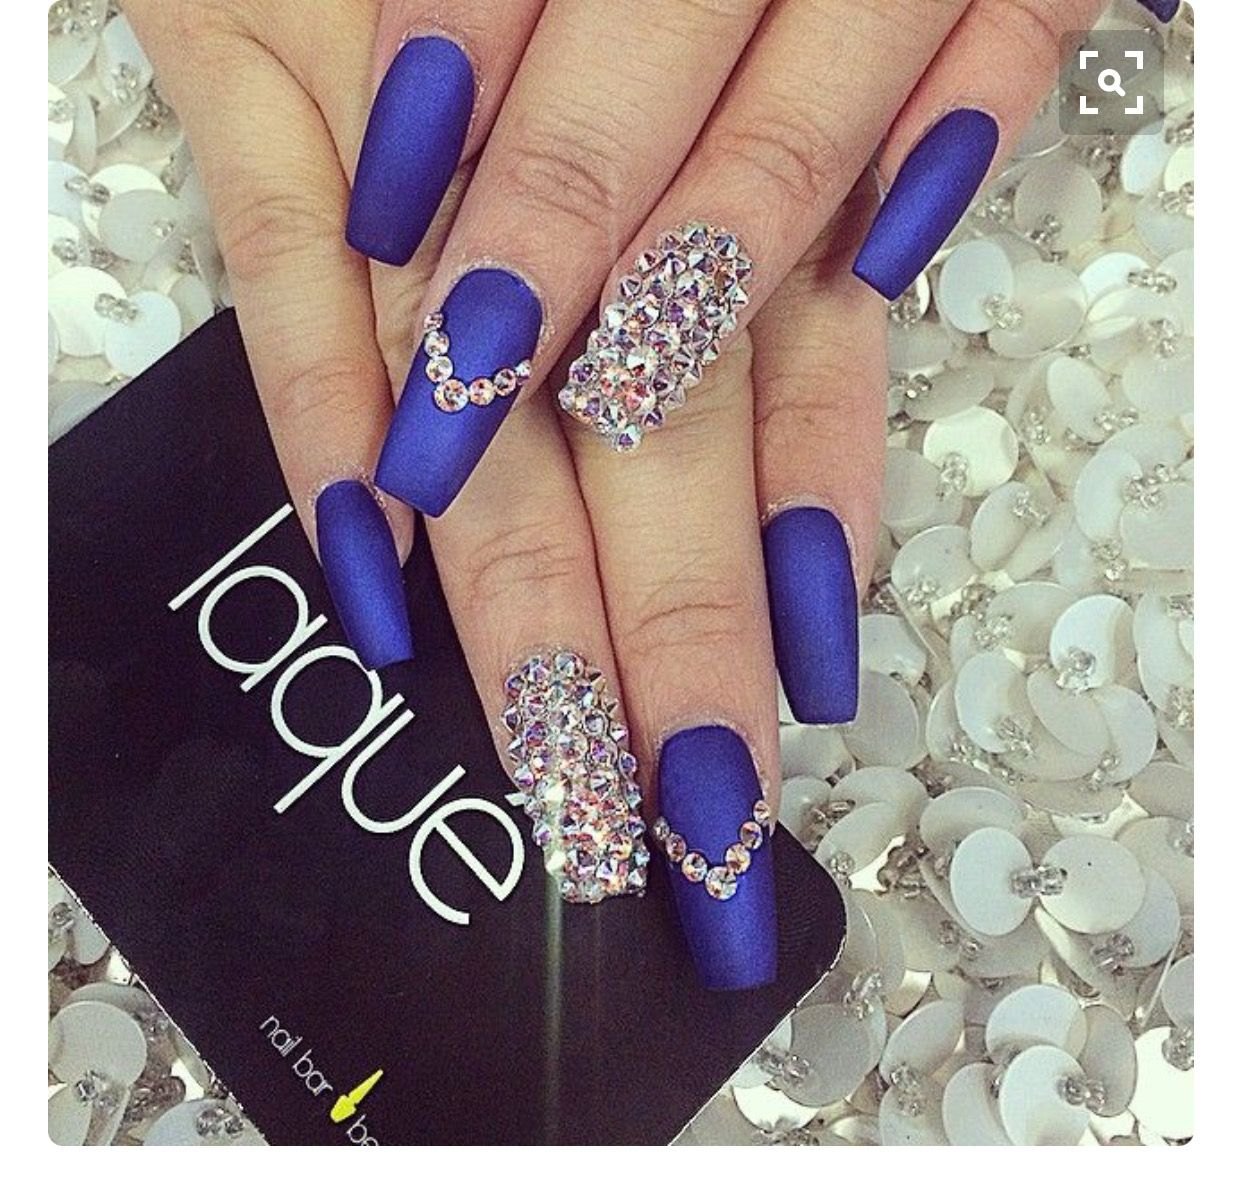 Pin by Stacy Jordan on Anytime Nails | Pinterest | Beautiful nail art